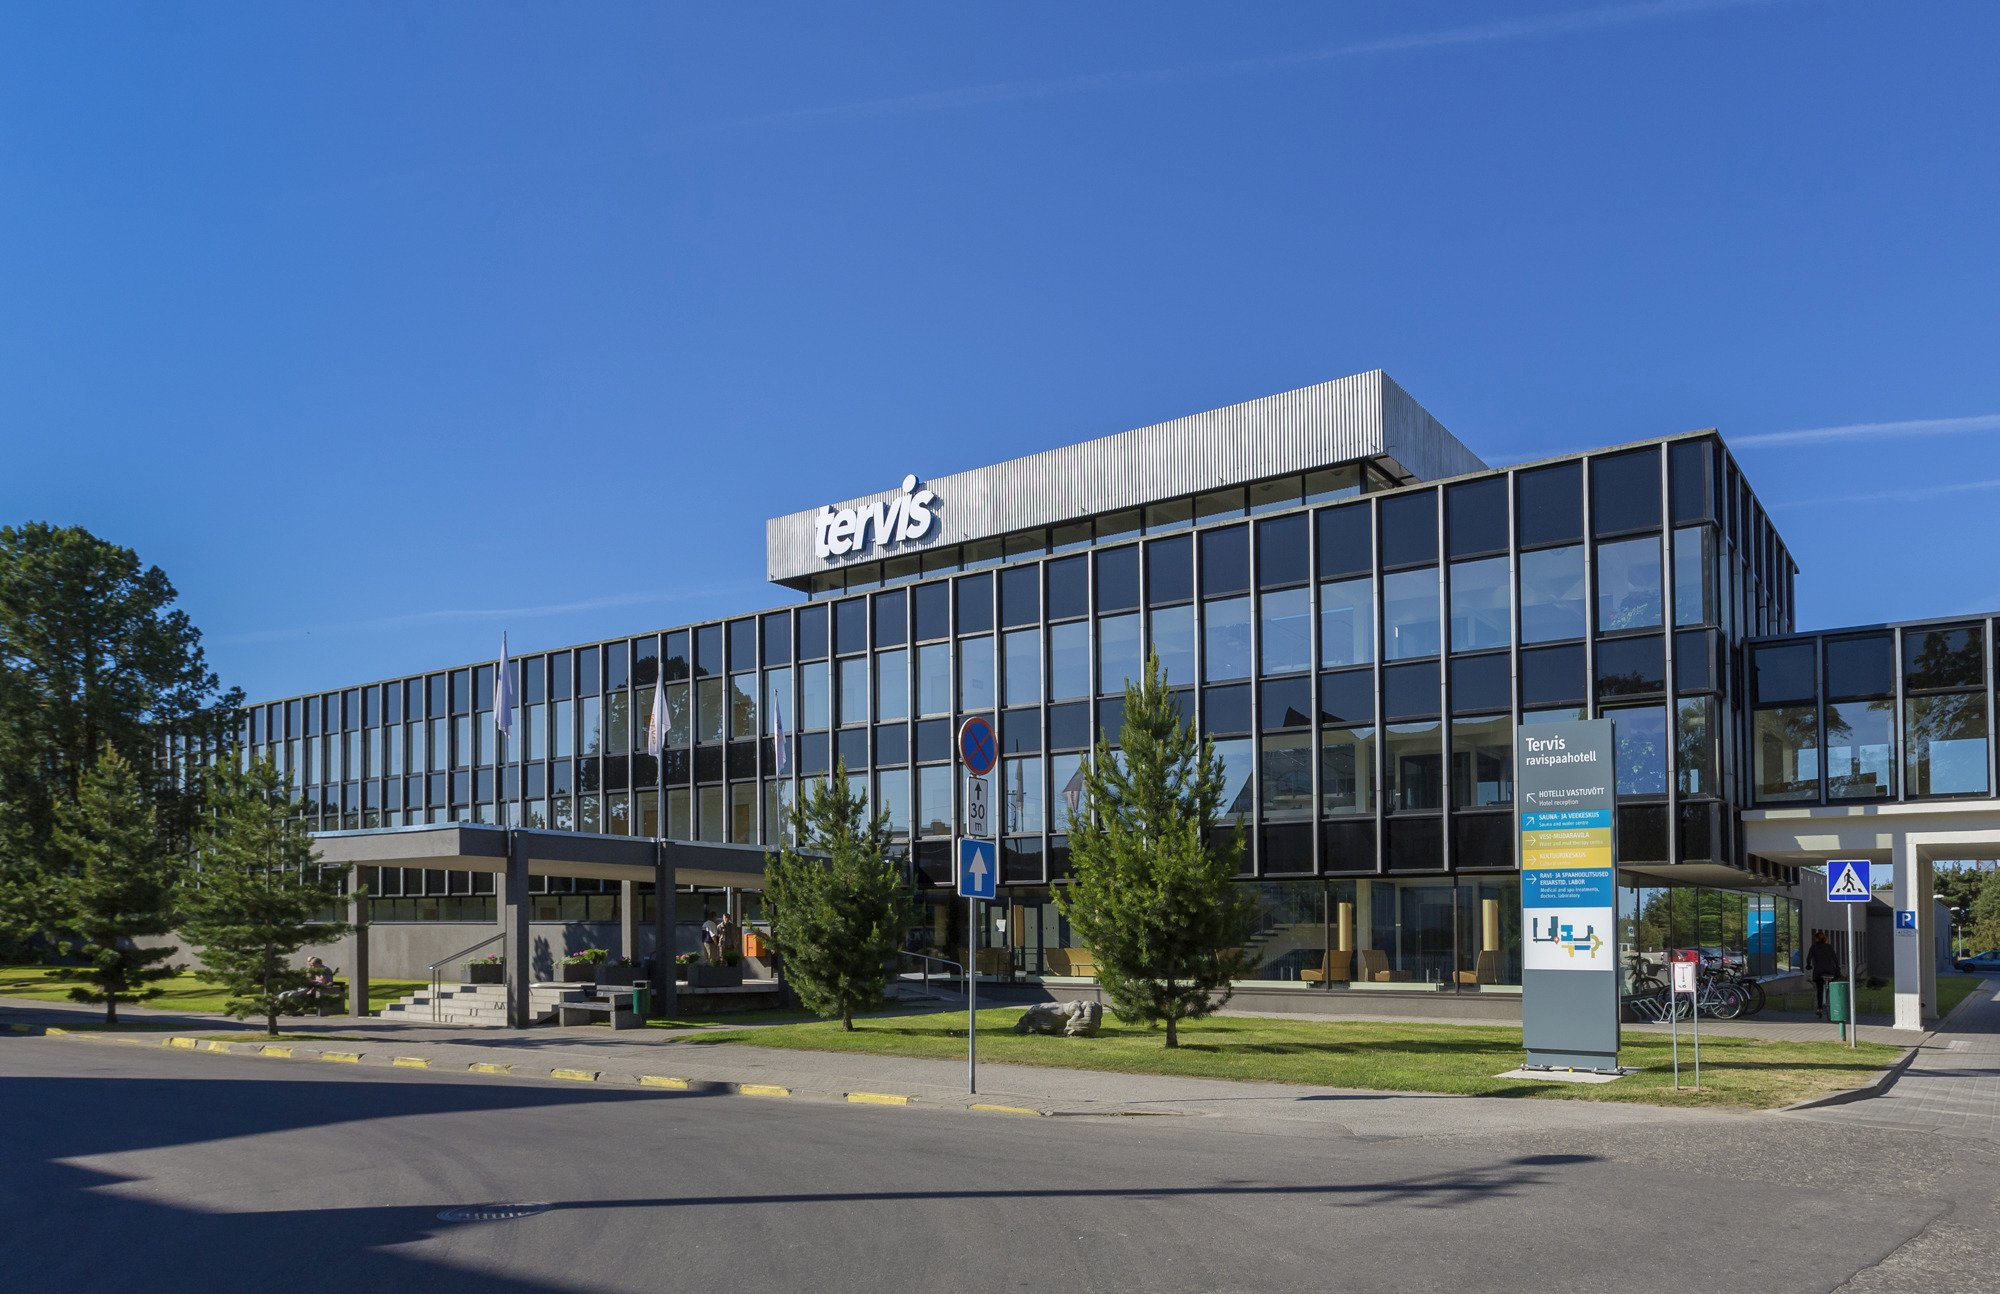 Tervis spa hotel